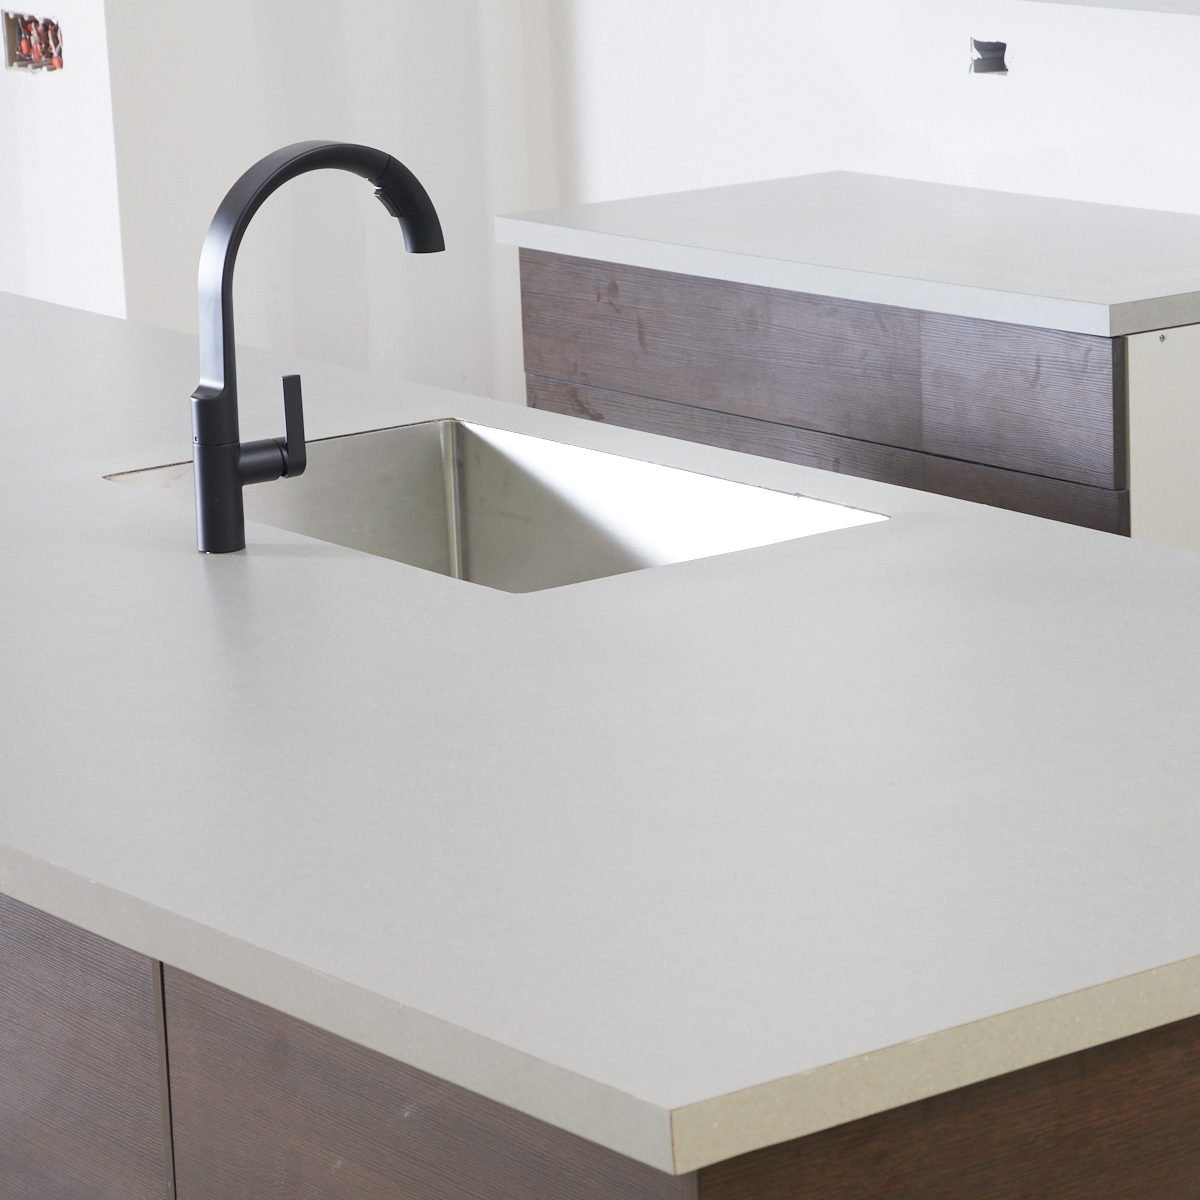 How to install a flushmount sink